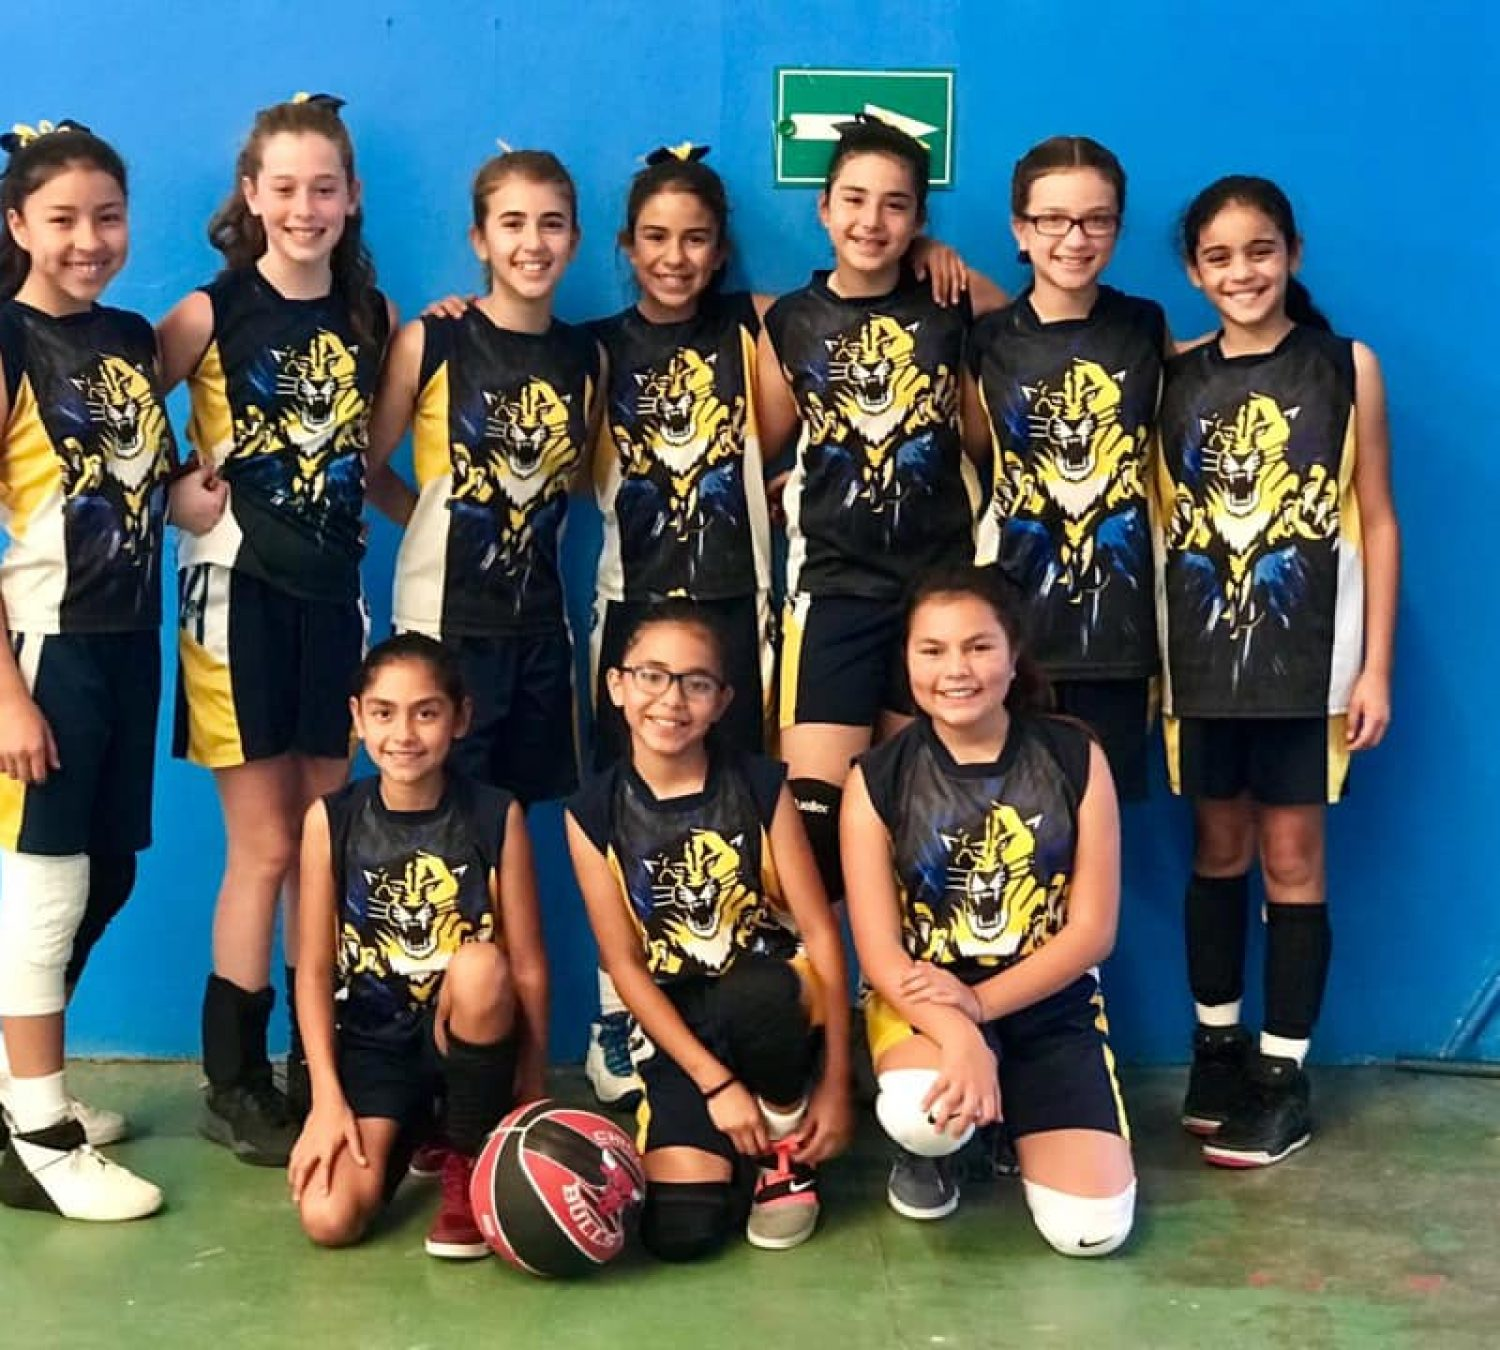 Today our girls' basketball team won against El Sagrado Corazón and Liceo Javier